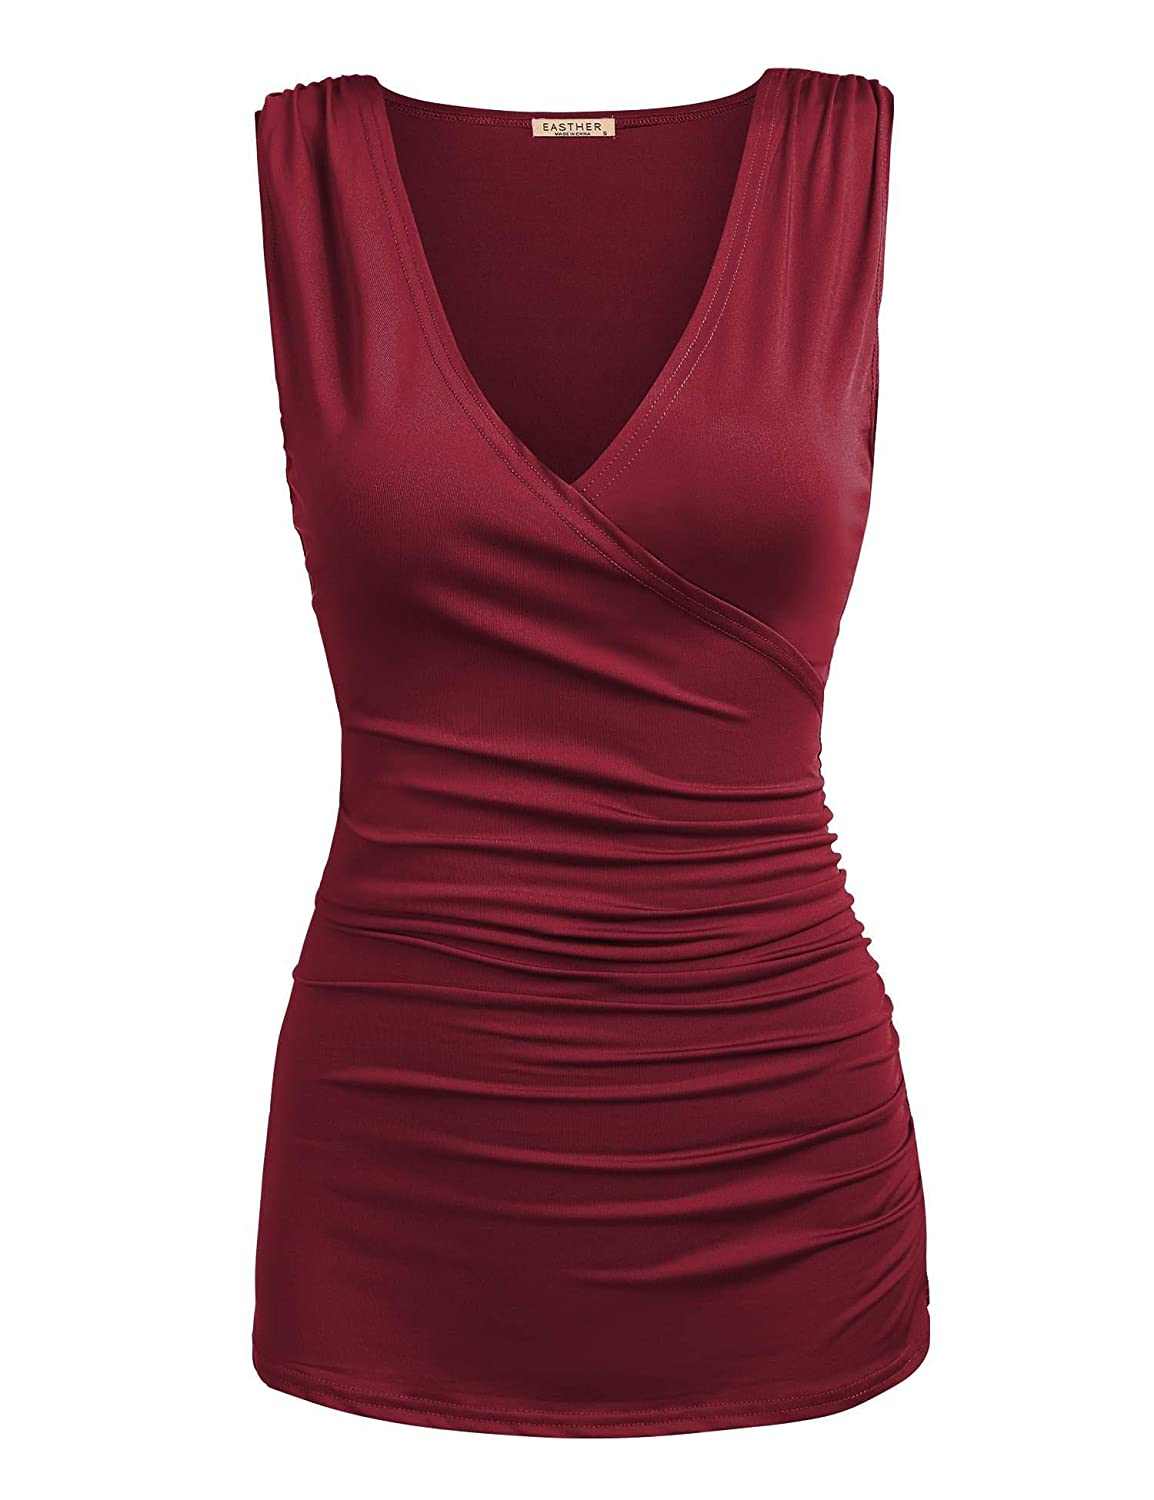 EASTHER Womens Summer Solid V Neck Ruched Side Slim Fit Casual Tank Tops